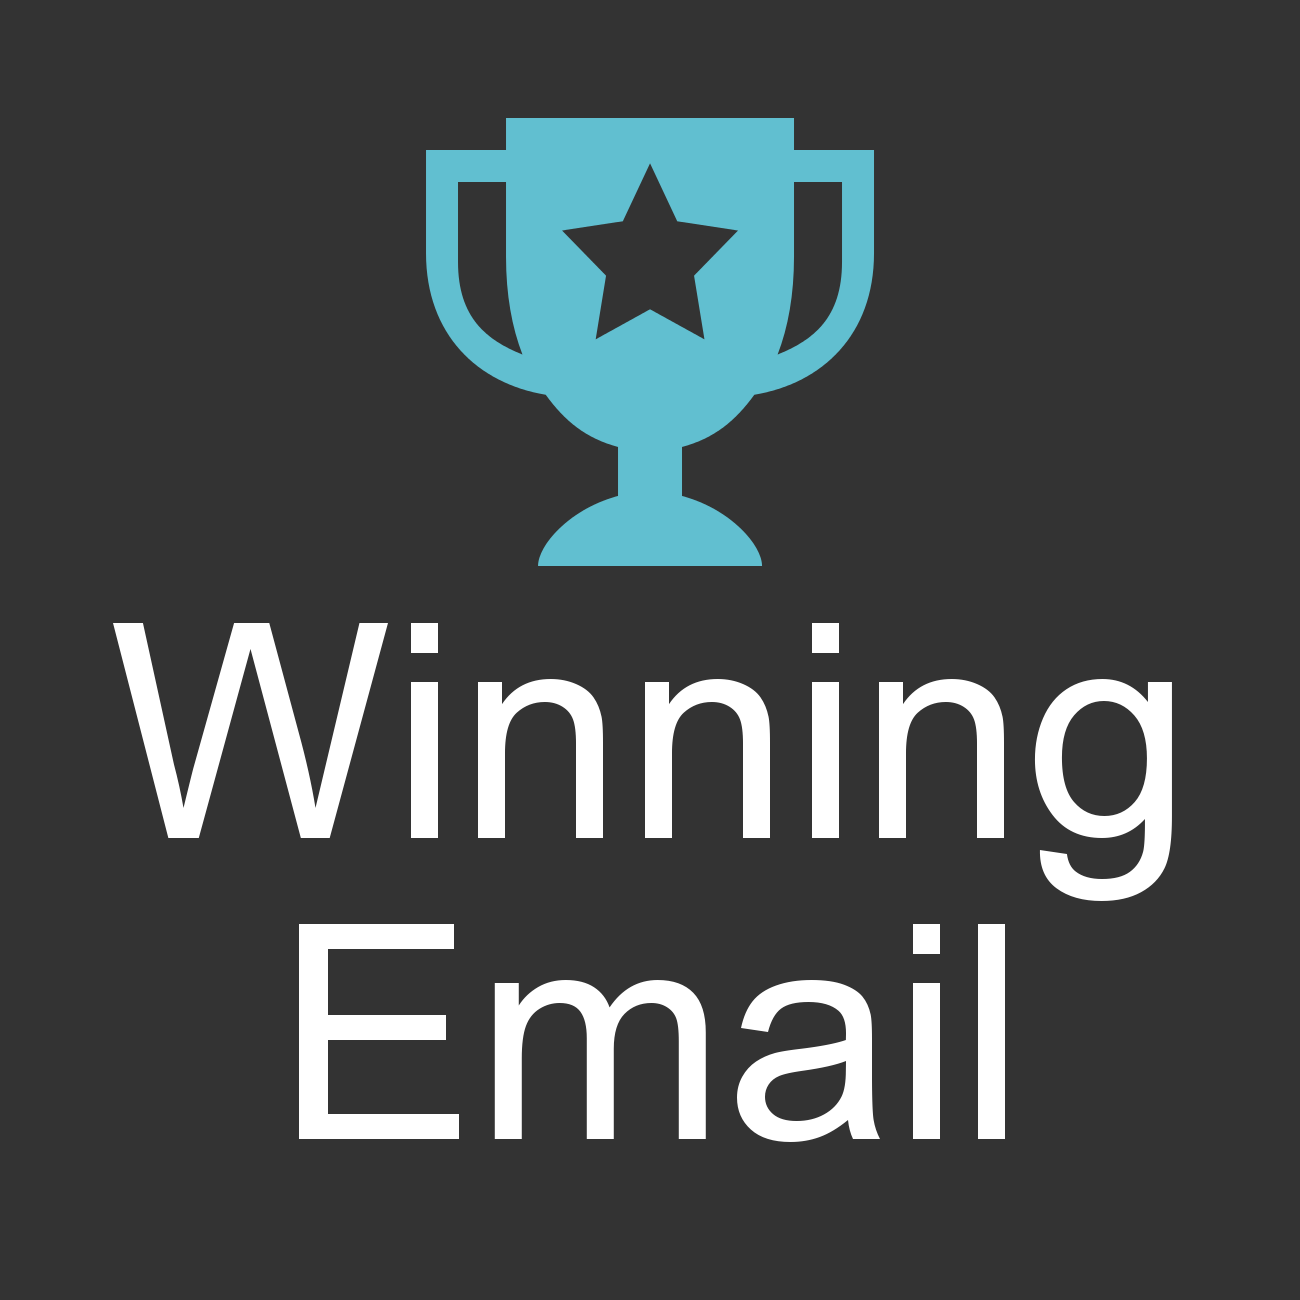 Email booster 1505841189 logo